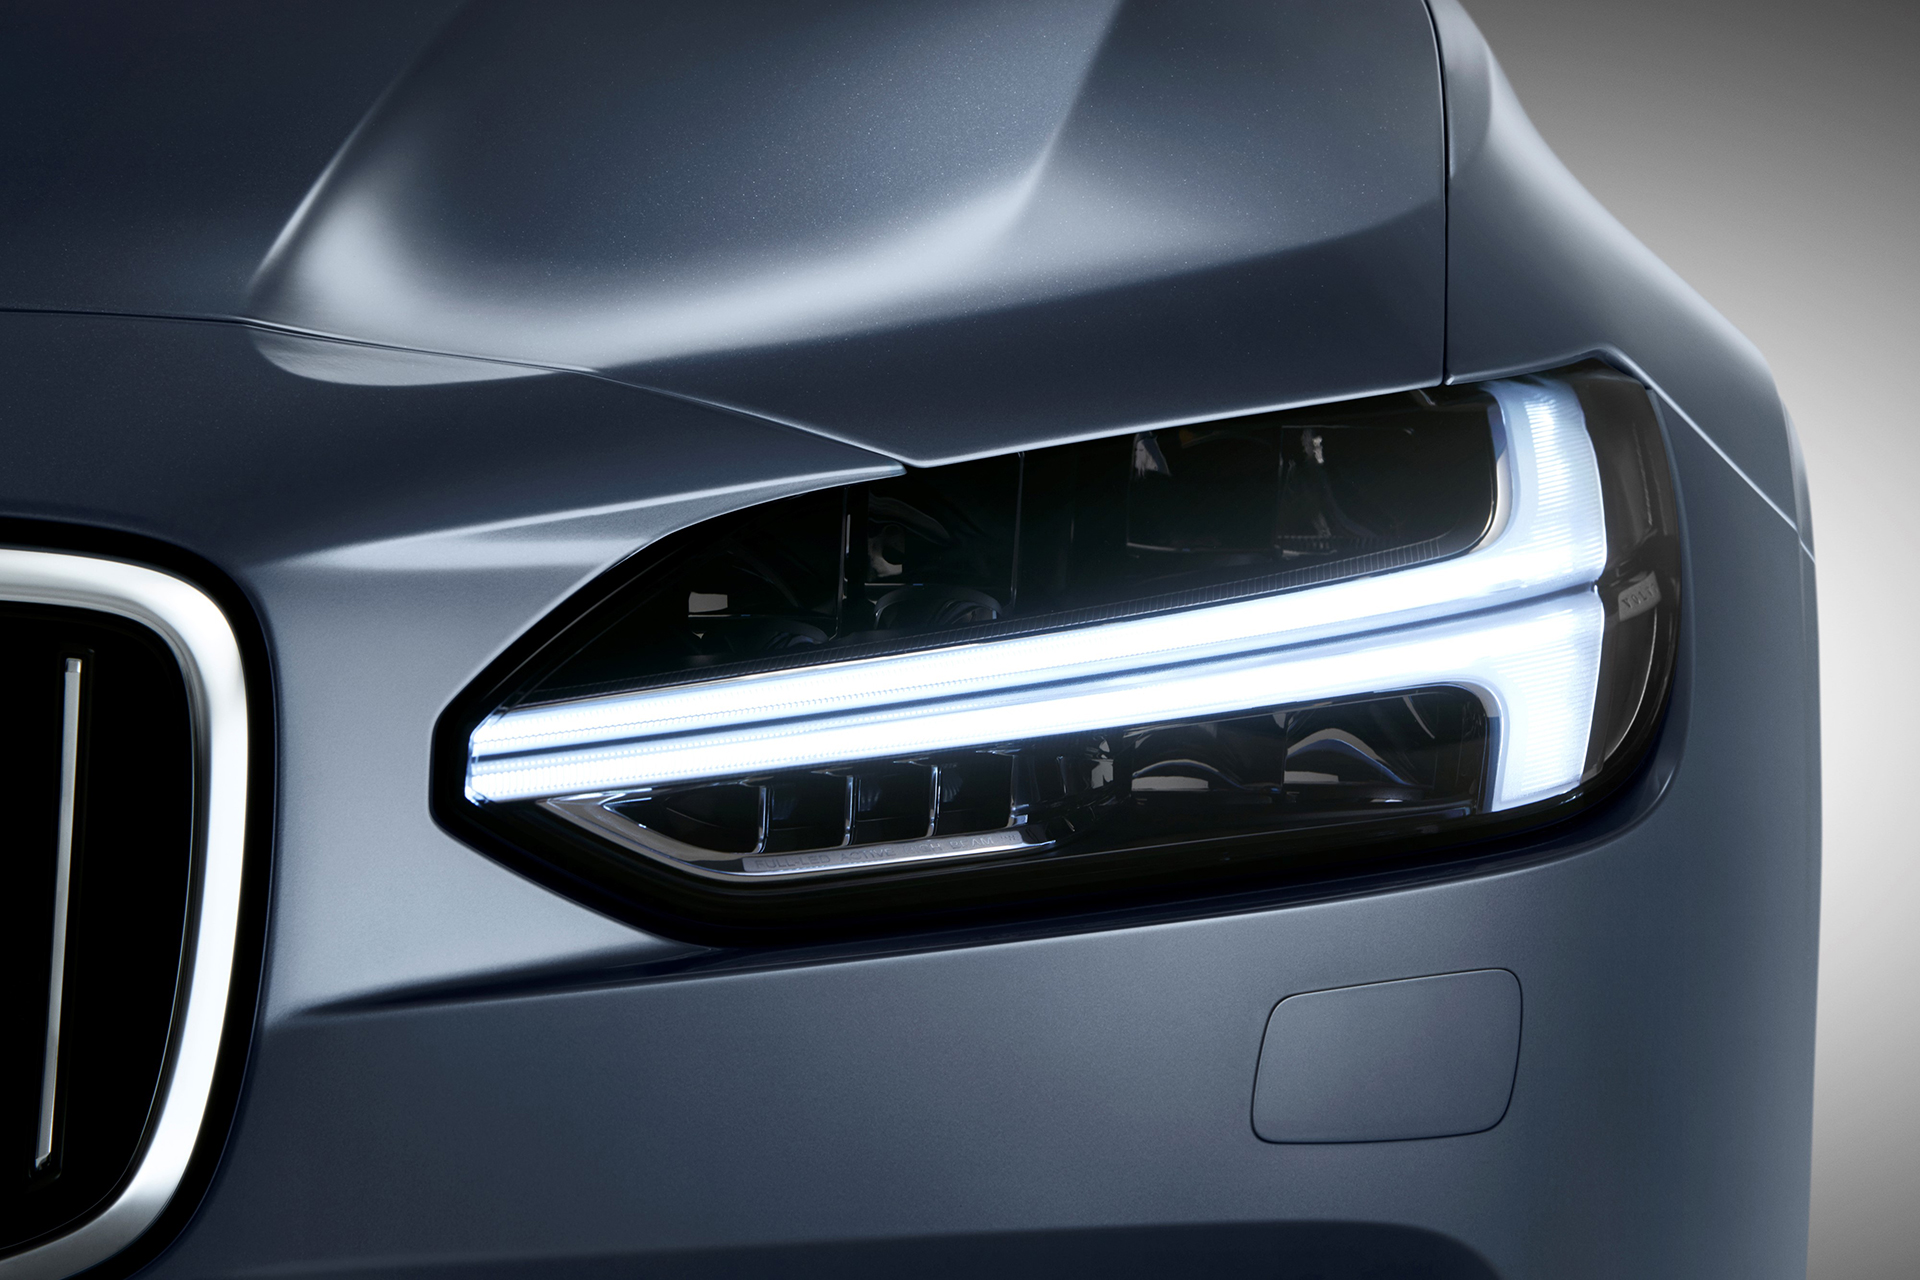 Volvo S90 - 2016 - front  light / optique avant